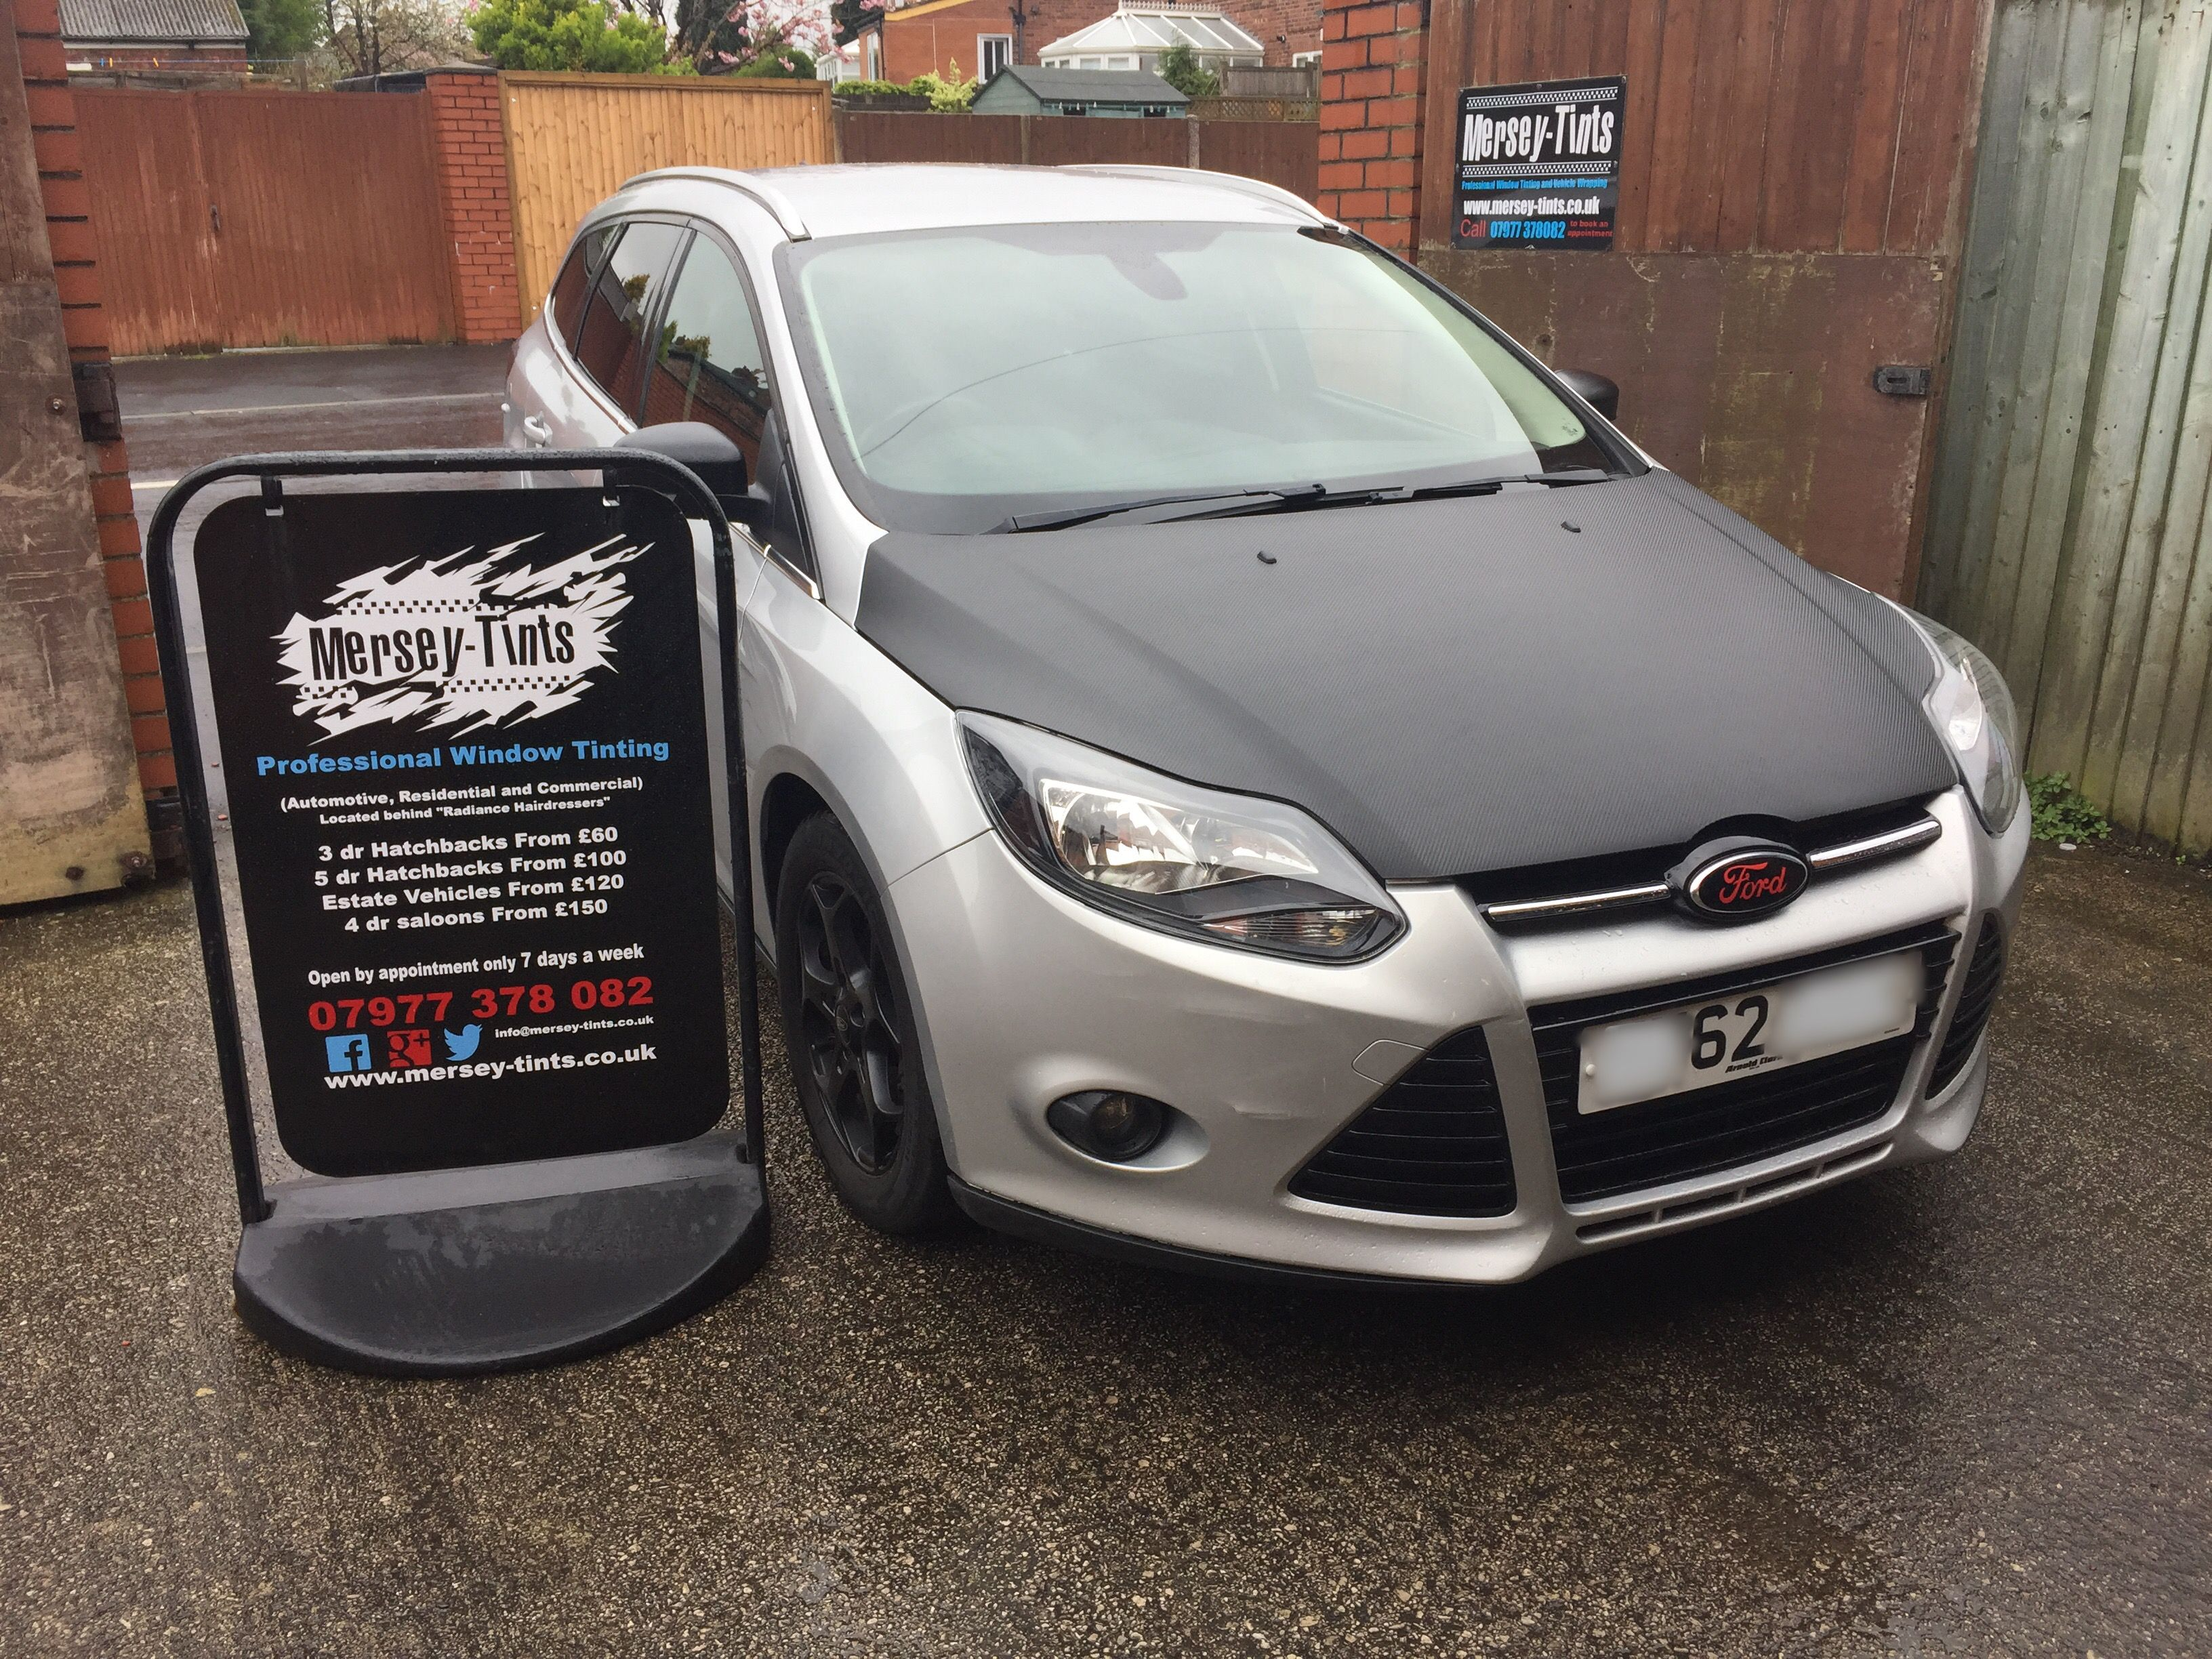 2012 Ford Focus Estate Previously In For Window Tints Custom Ford